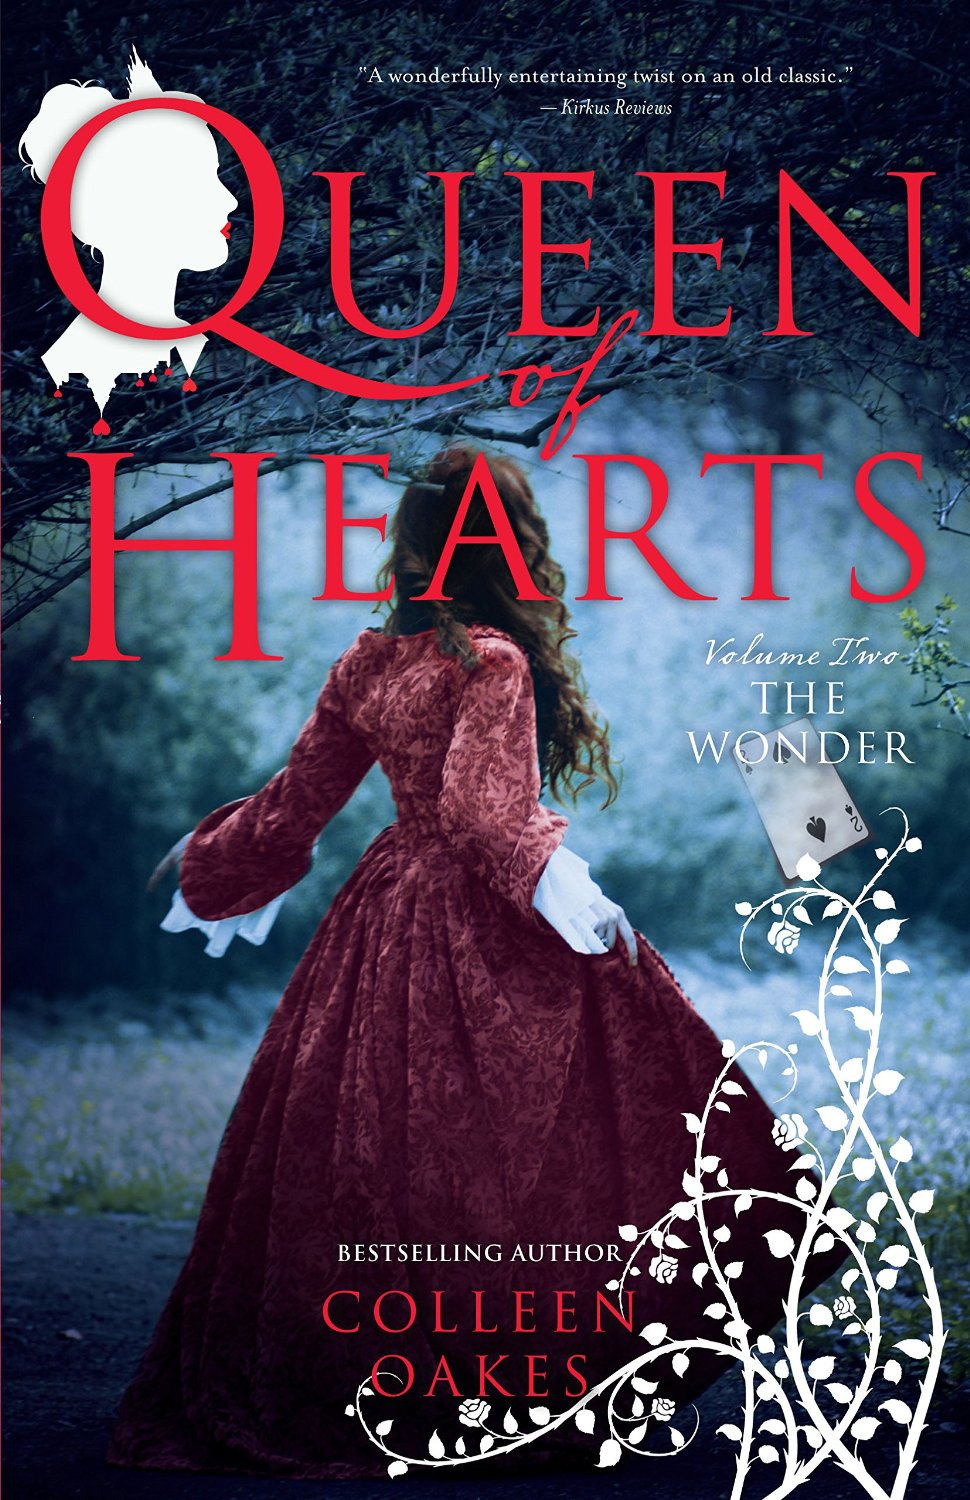 Queen of Hearts Volume II